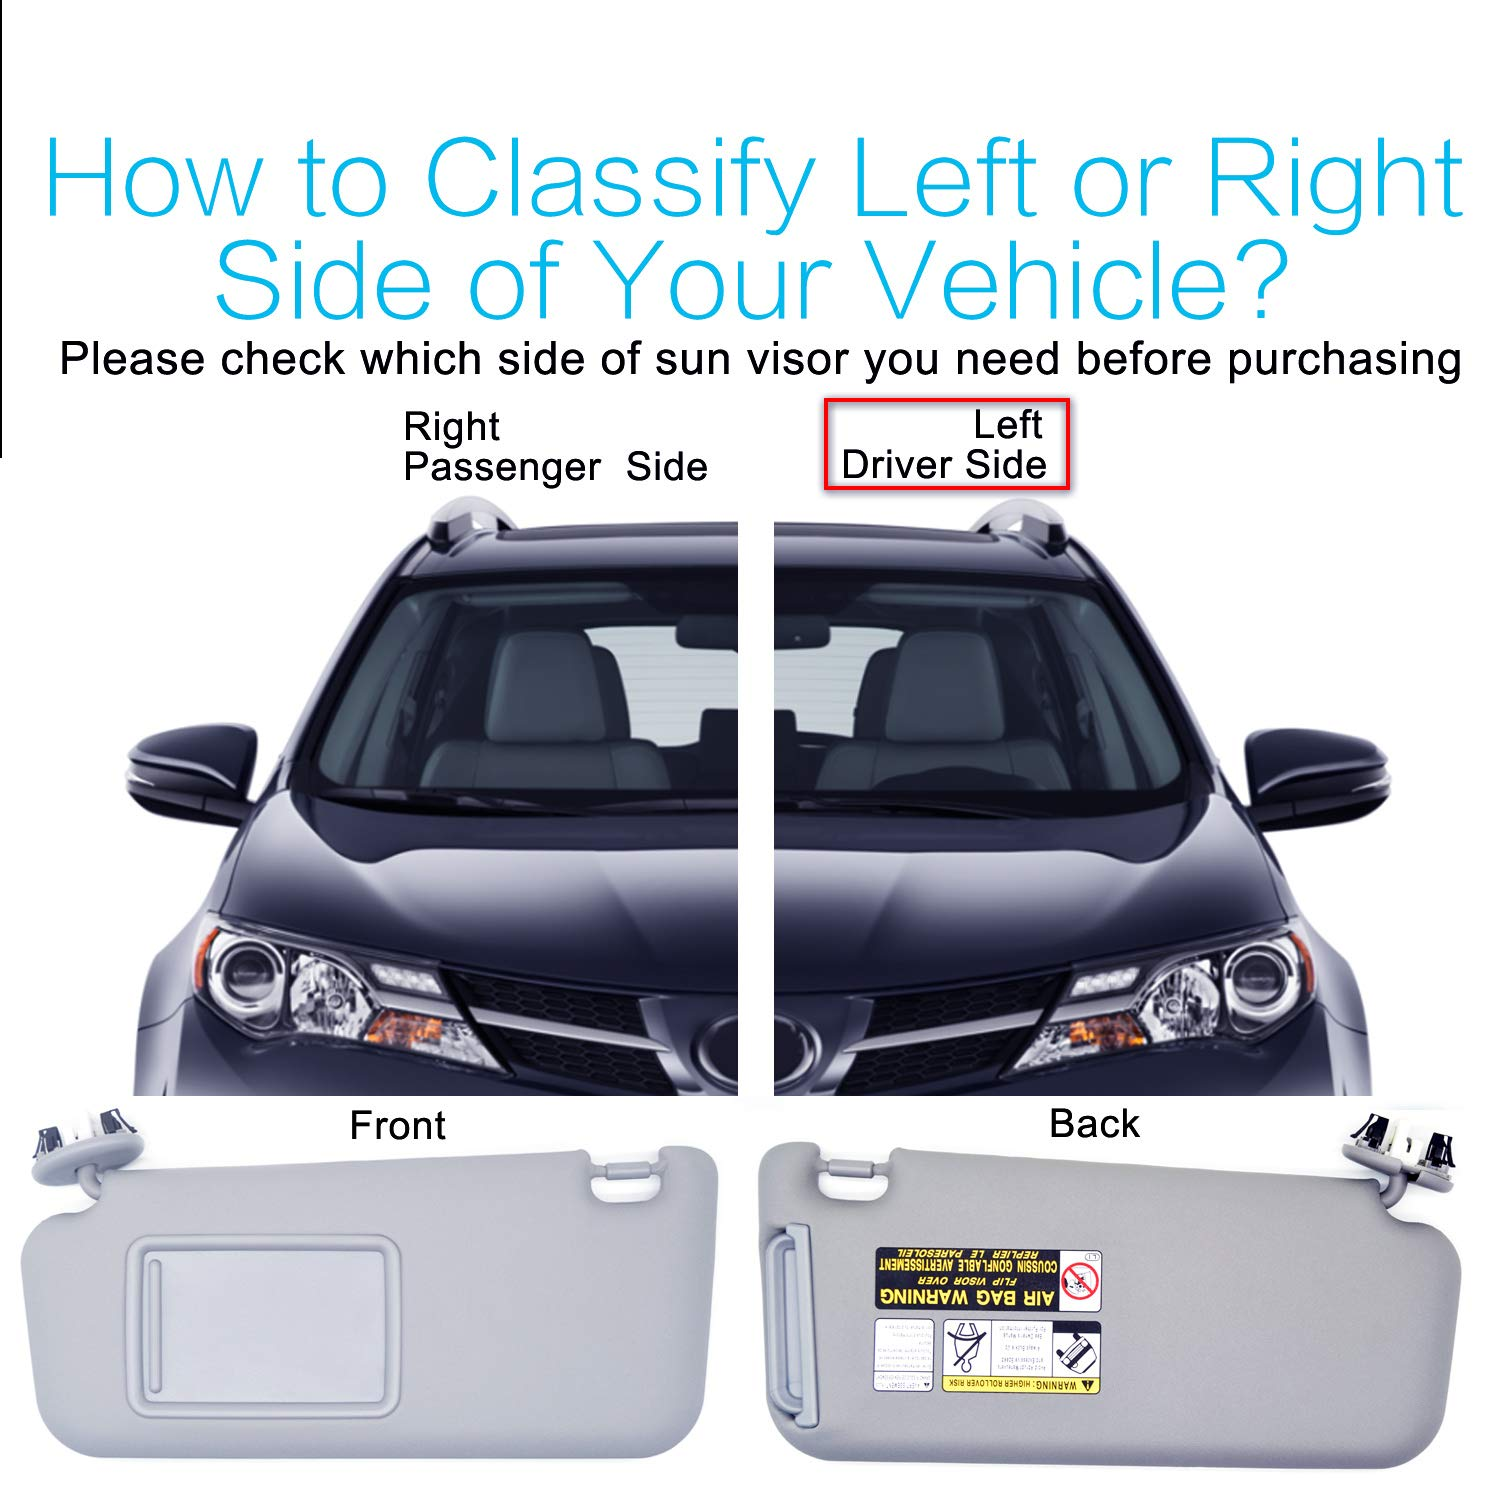 Vinyl Sun Visor Left Driver Side Compatible for 2006 2007 2008 2009 2010 2011 2012 2013 Toyota RAV4 74320-42501-B2 Windshield Sunroof Visor Assembly with Mirror /& Extension Gray With Vanity Light